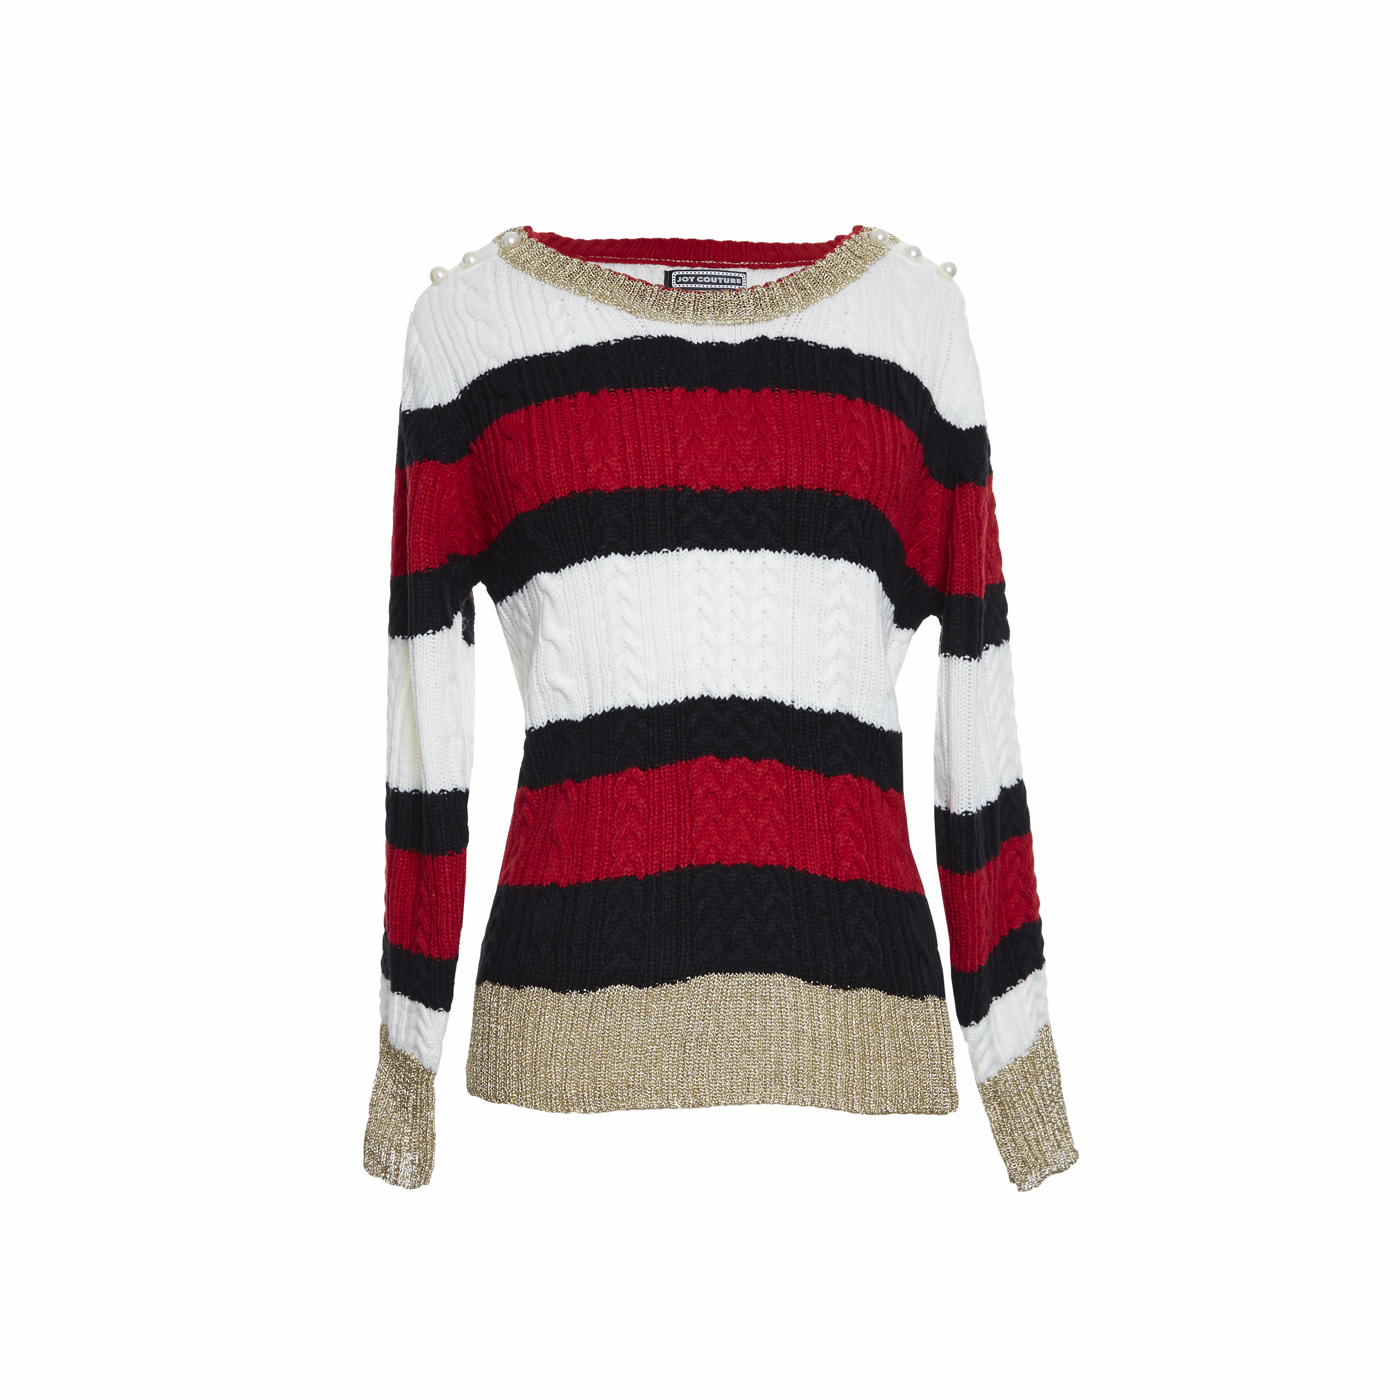 Mariniere Sweater With Pearls